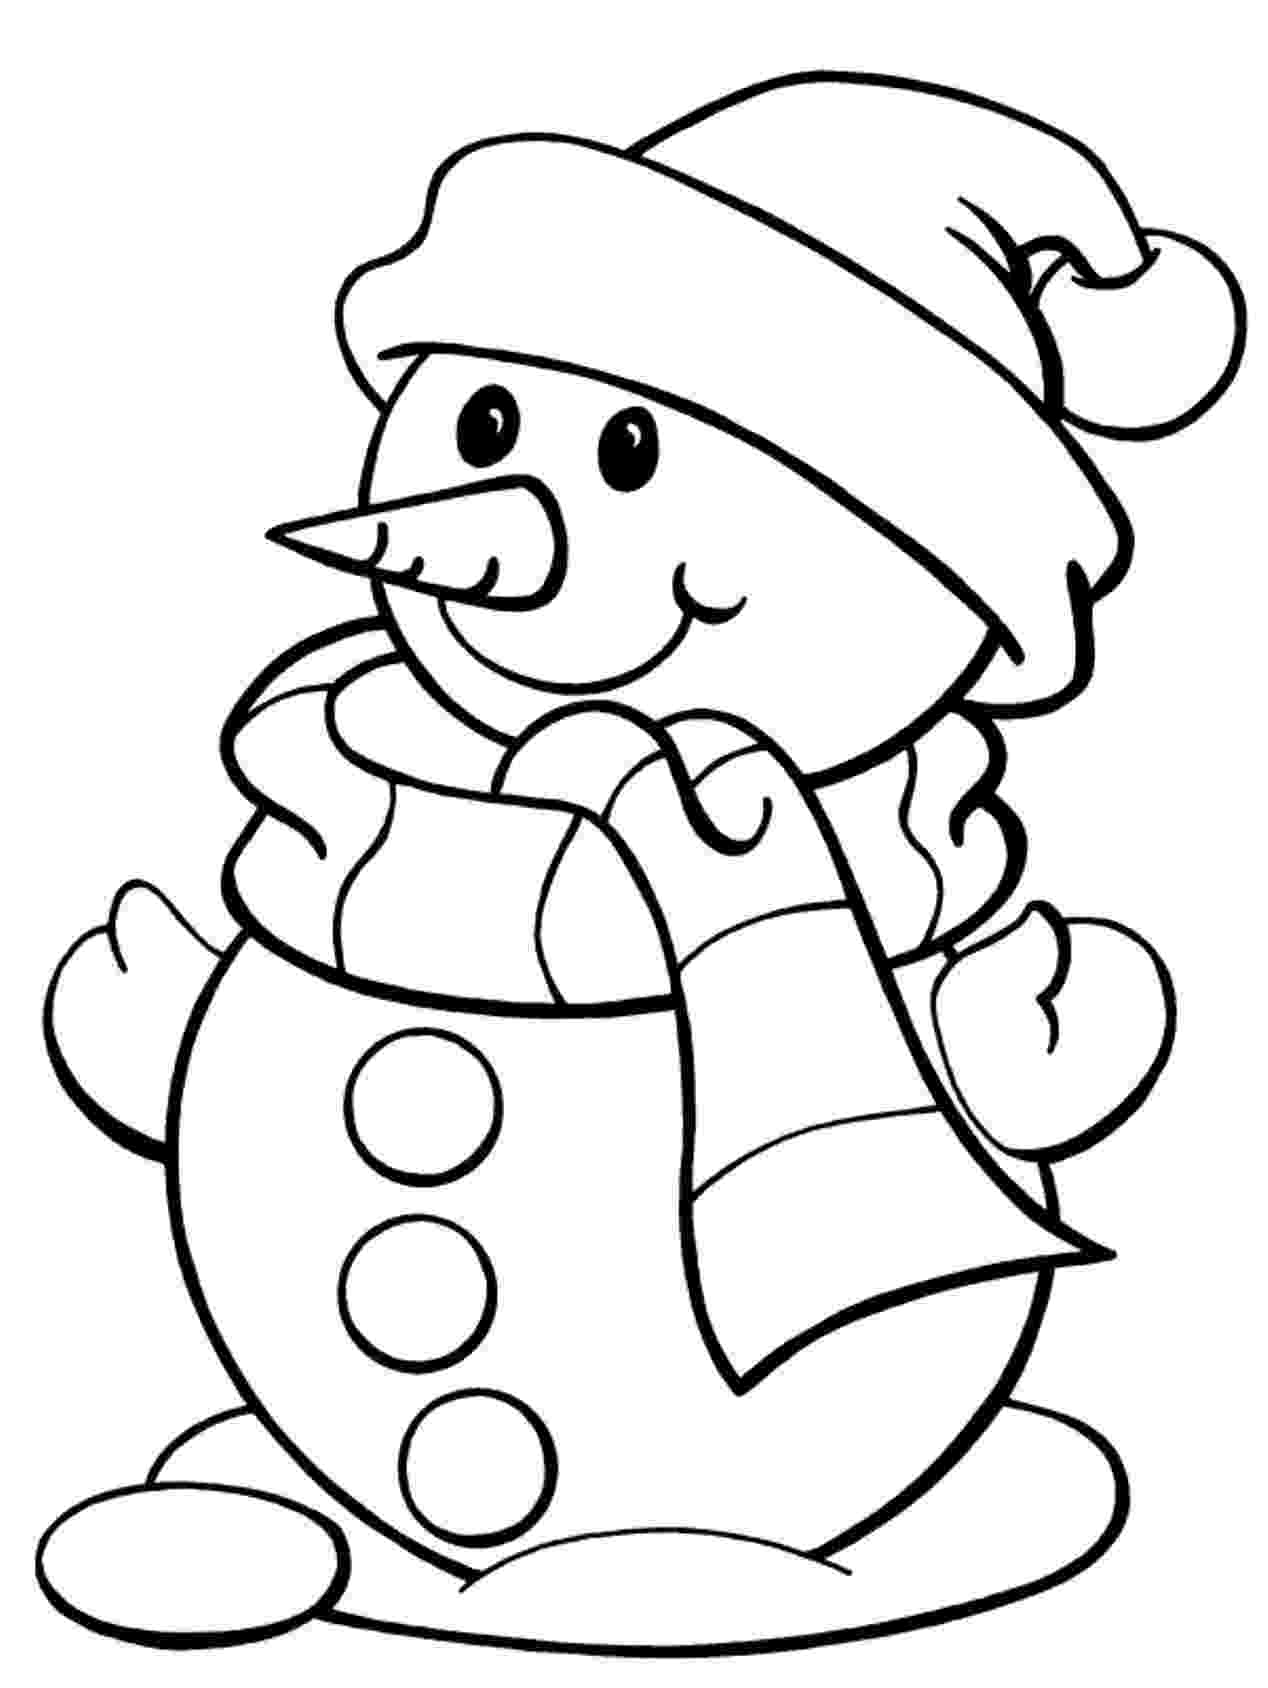 free printable winter coloring pages for kids free printable winter coloring pages for kids for printable kids free coloring pages winter